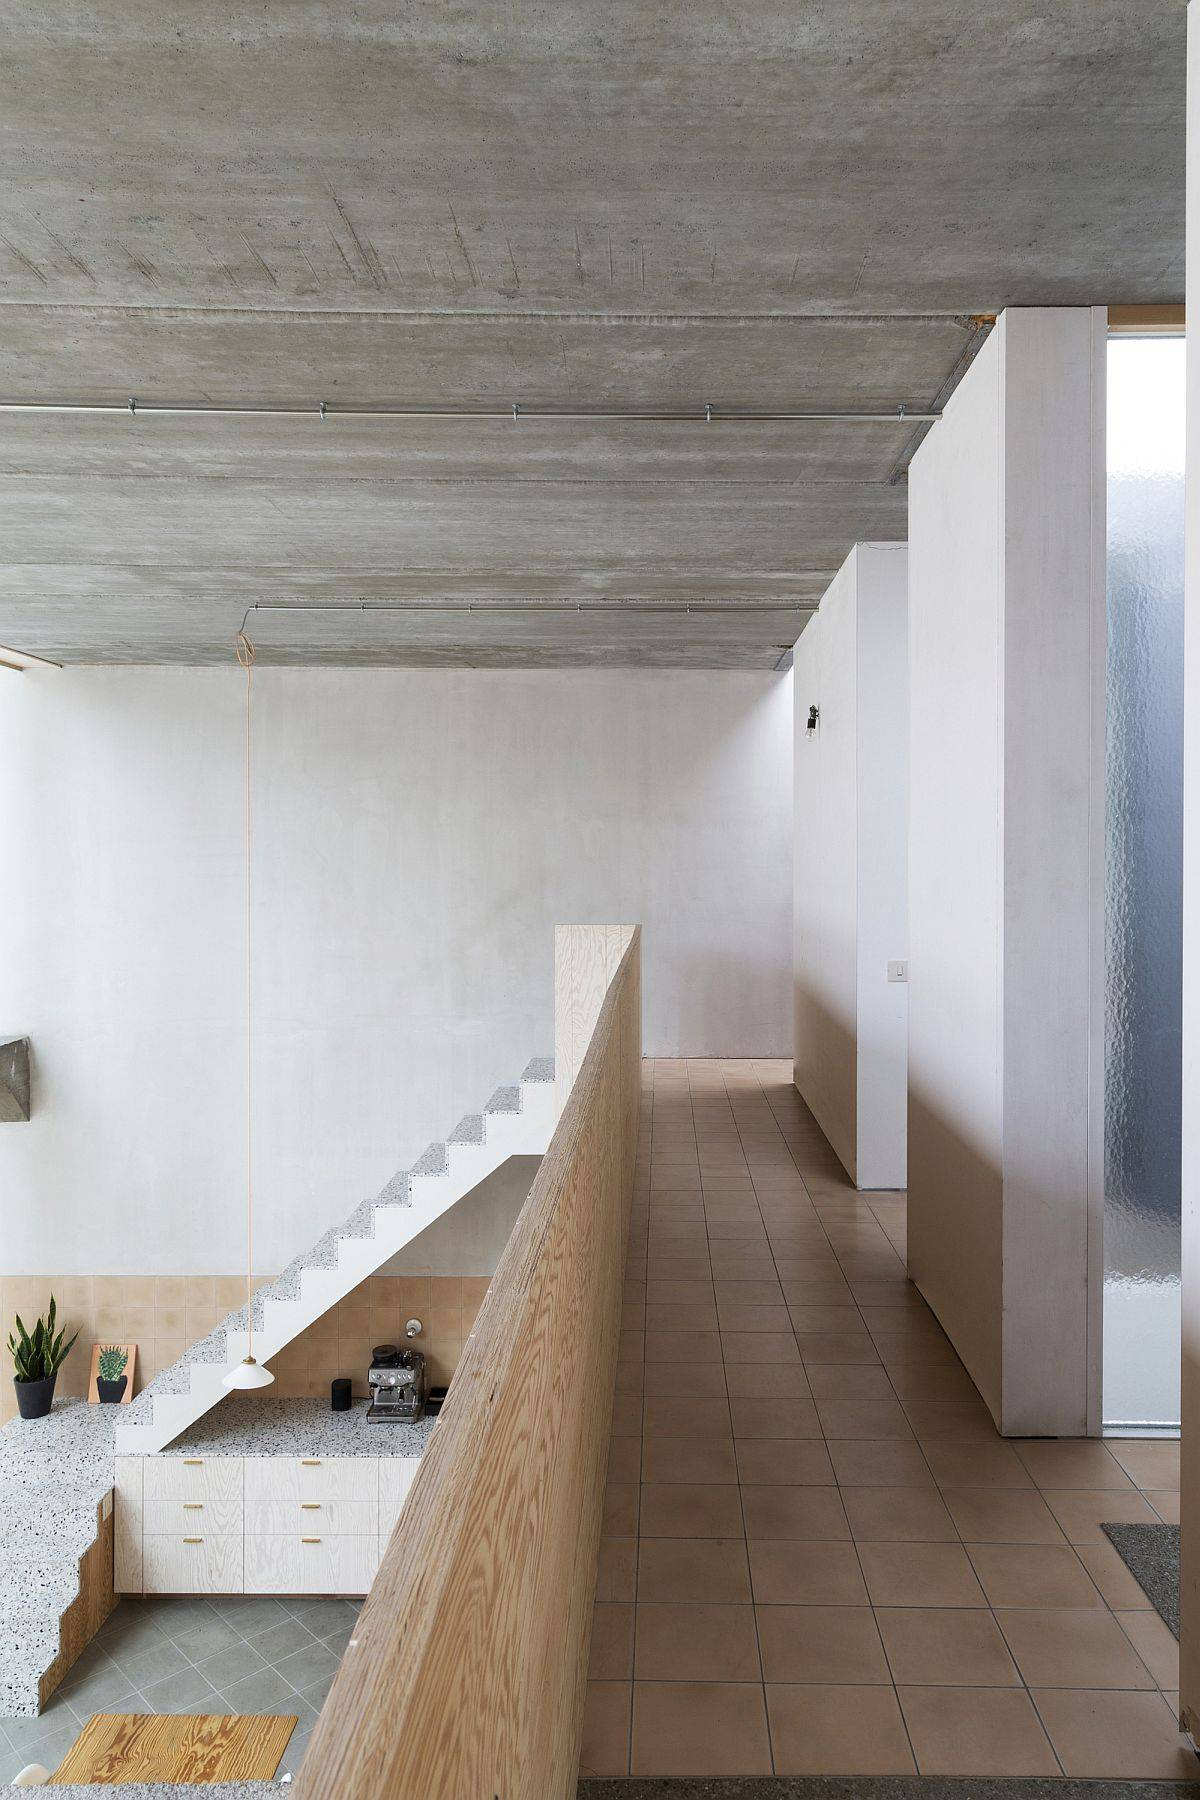 Interior-of-the-adaptive-home-clad-in-concrete-wood-and-mosaic-36966